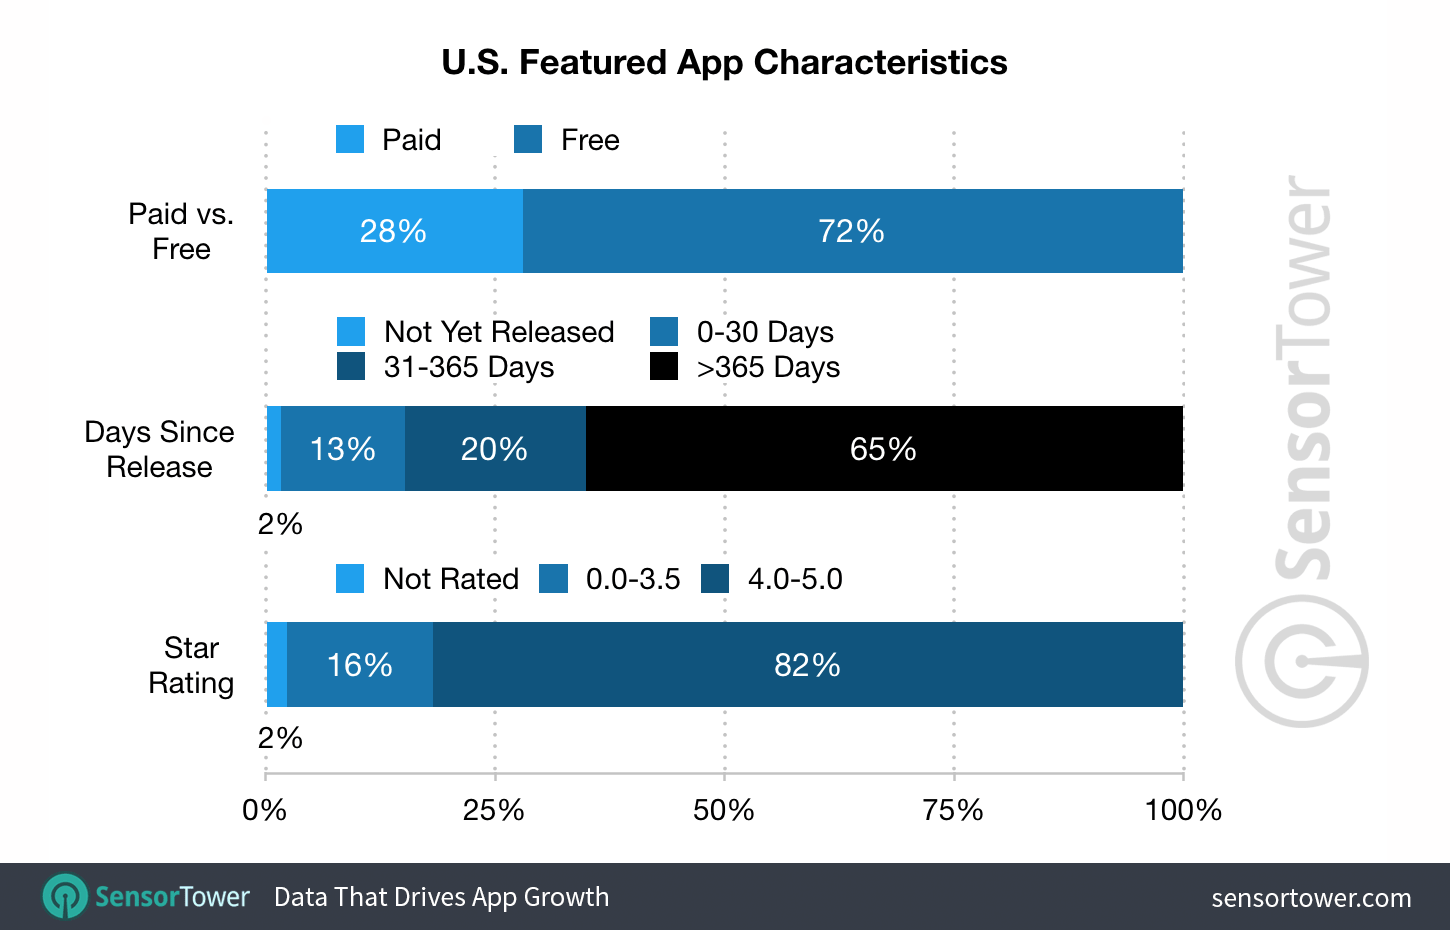 65% of Apps Featured on the App Store Are More Than One Year